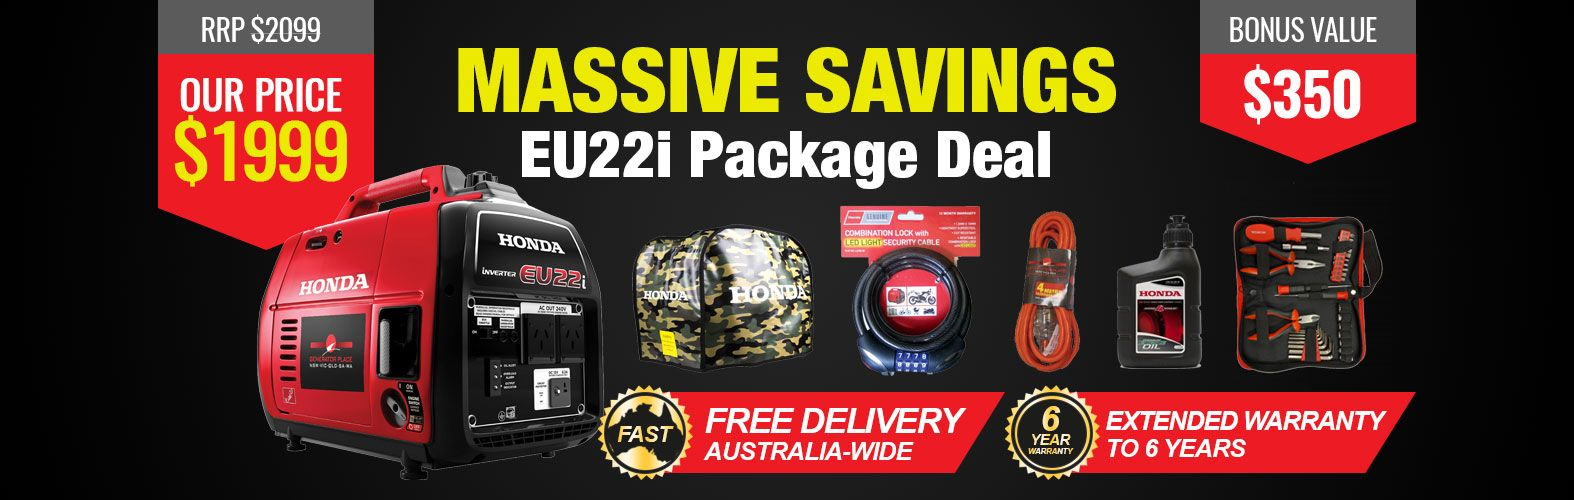 eu22i PACKAGE banner-new